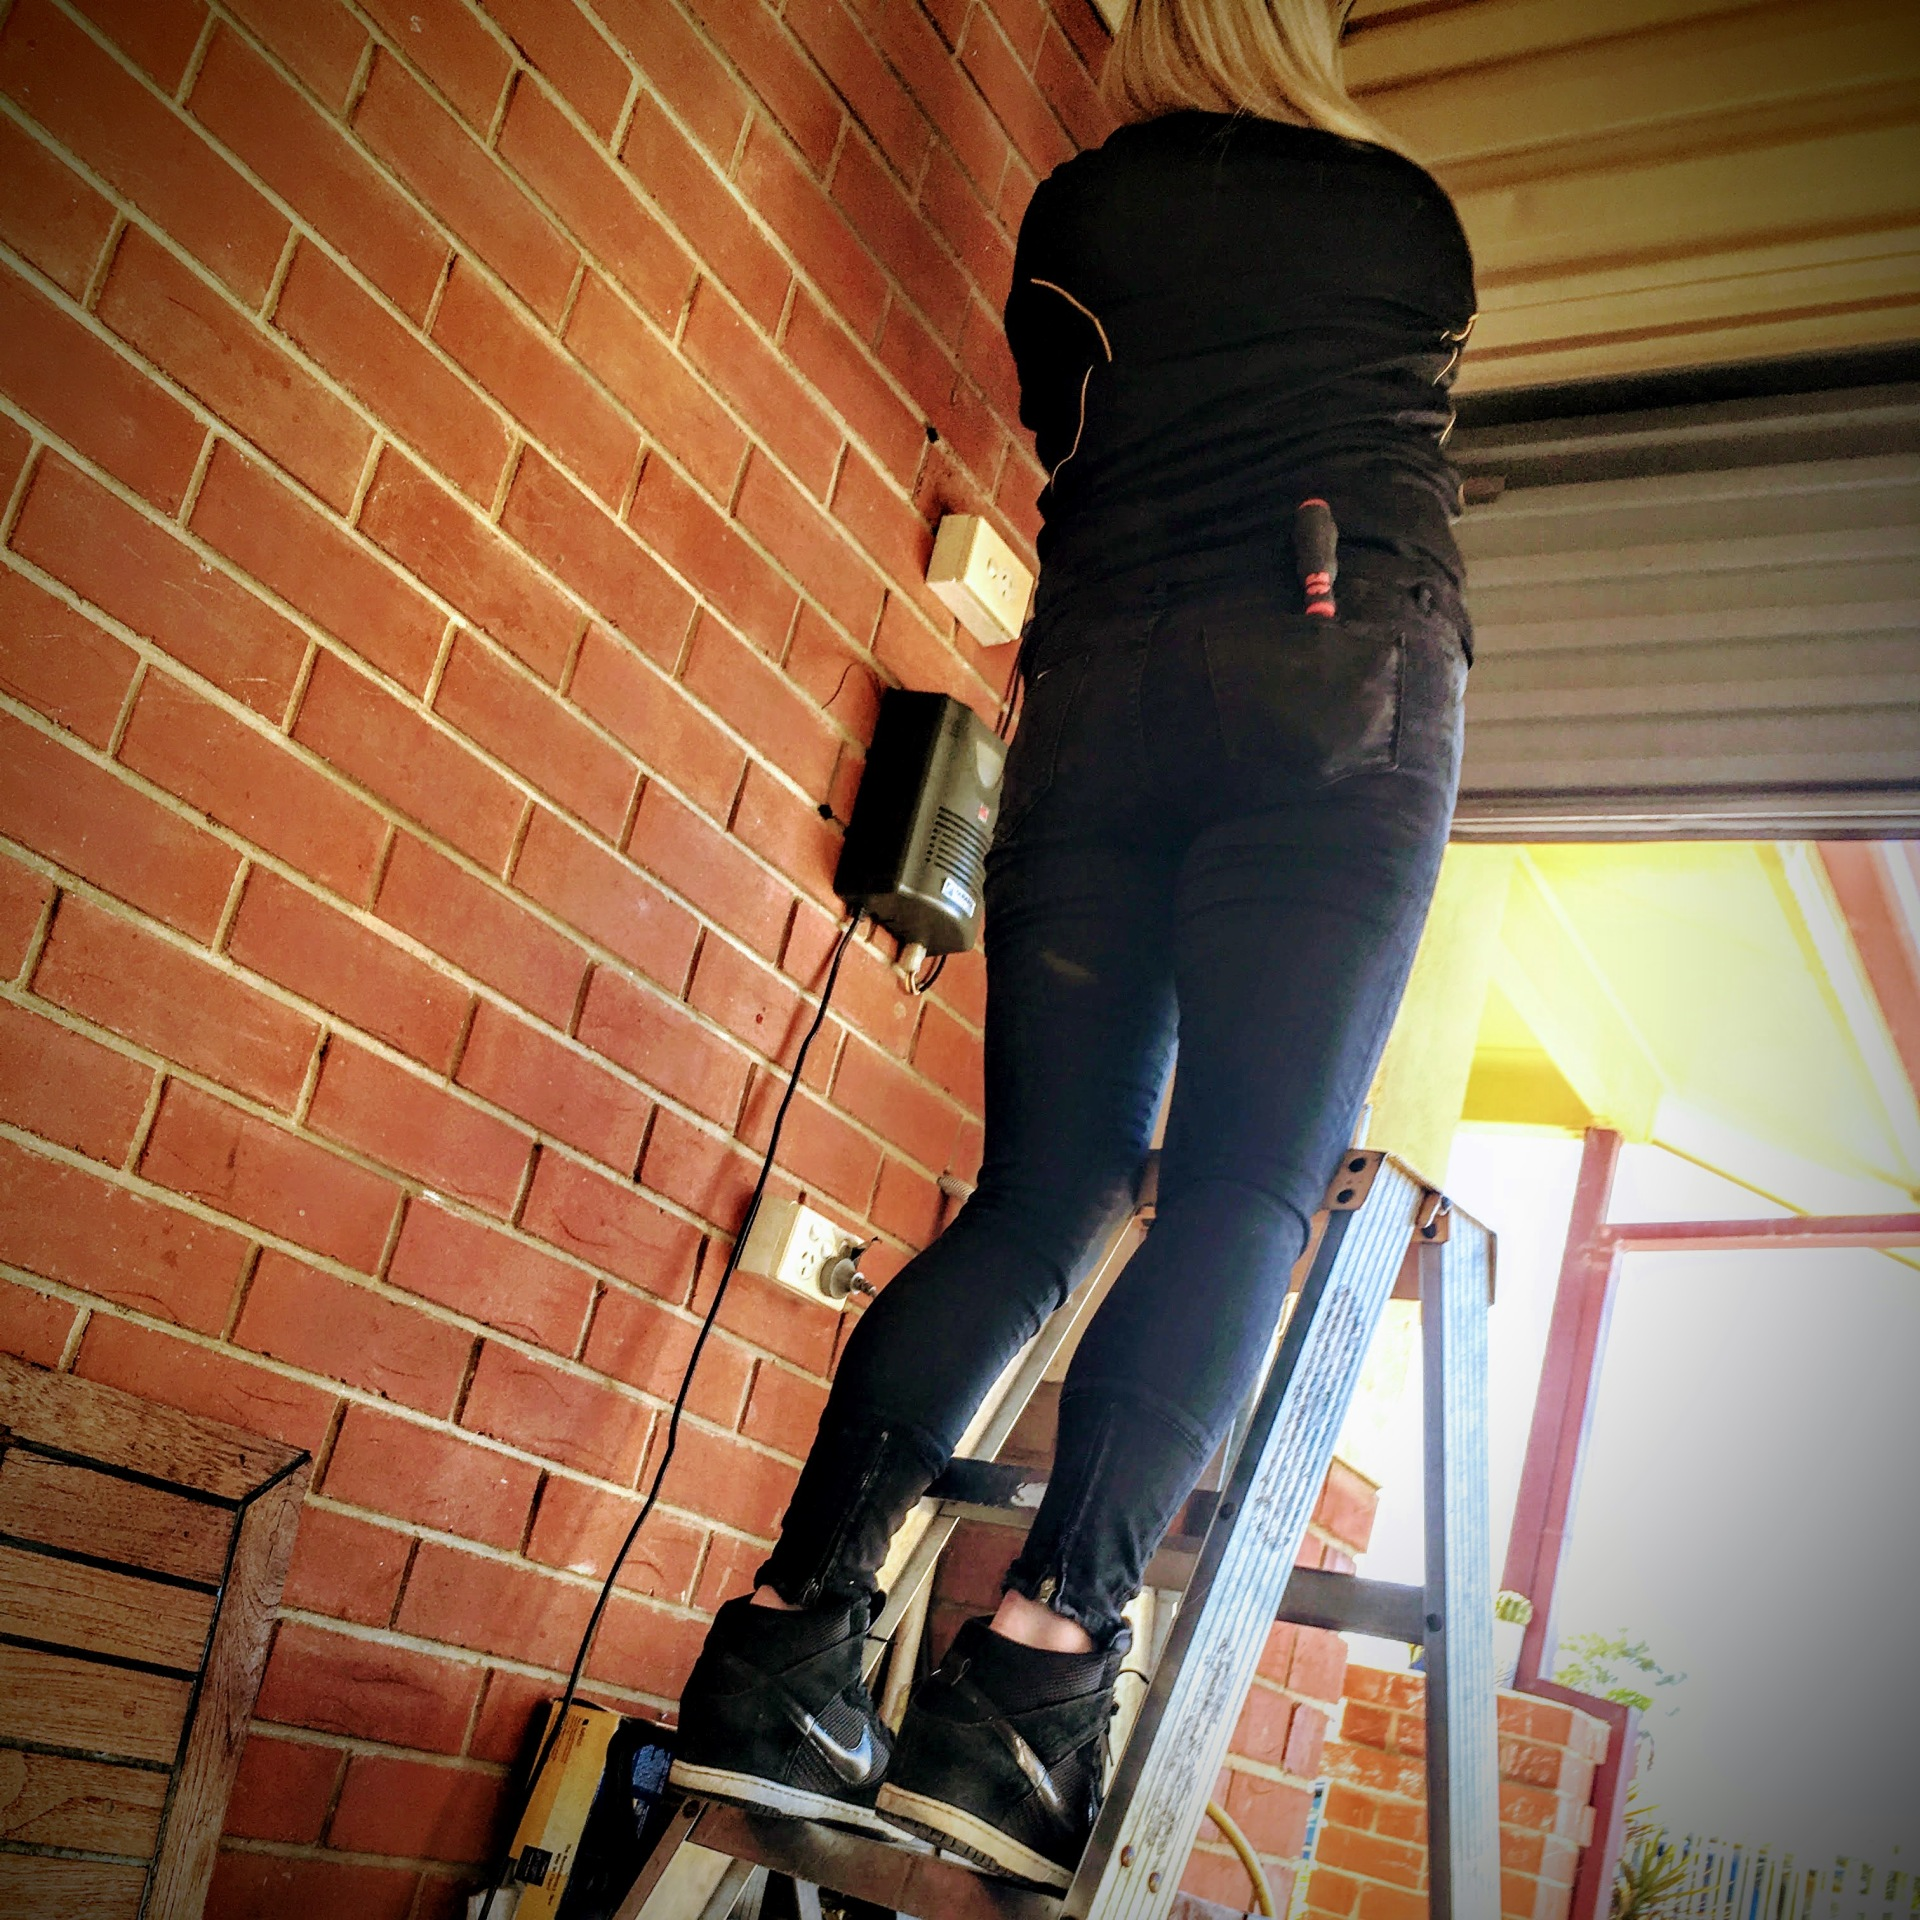 Our senior garage door technician Sara adjusting a Glidermatic roller door opener